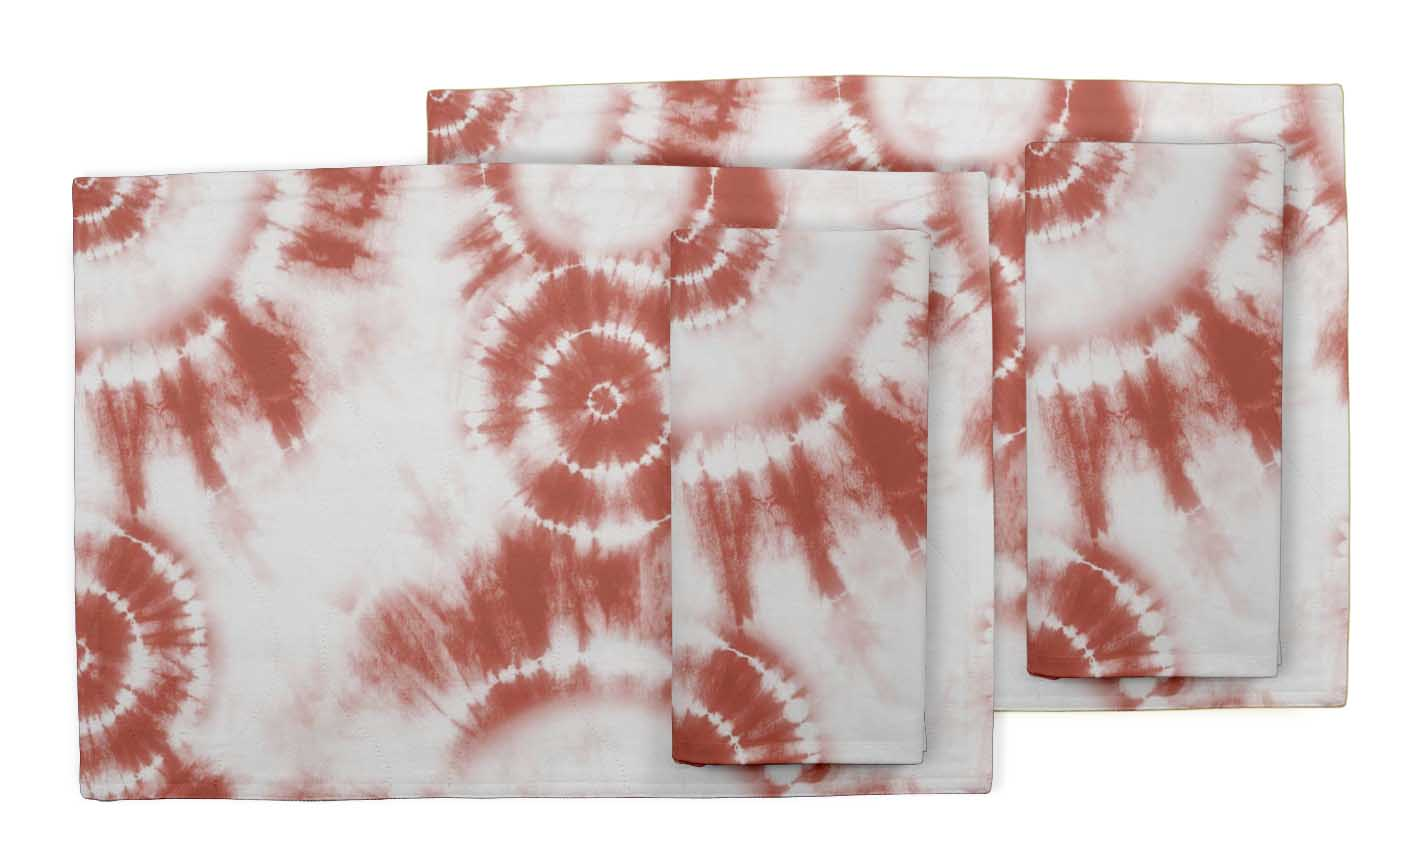 Details about  /S4Sassy Bandhani Tie-Dye Room Reversible Tablemats With Napkins set-TD-42D